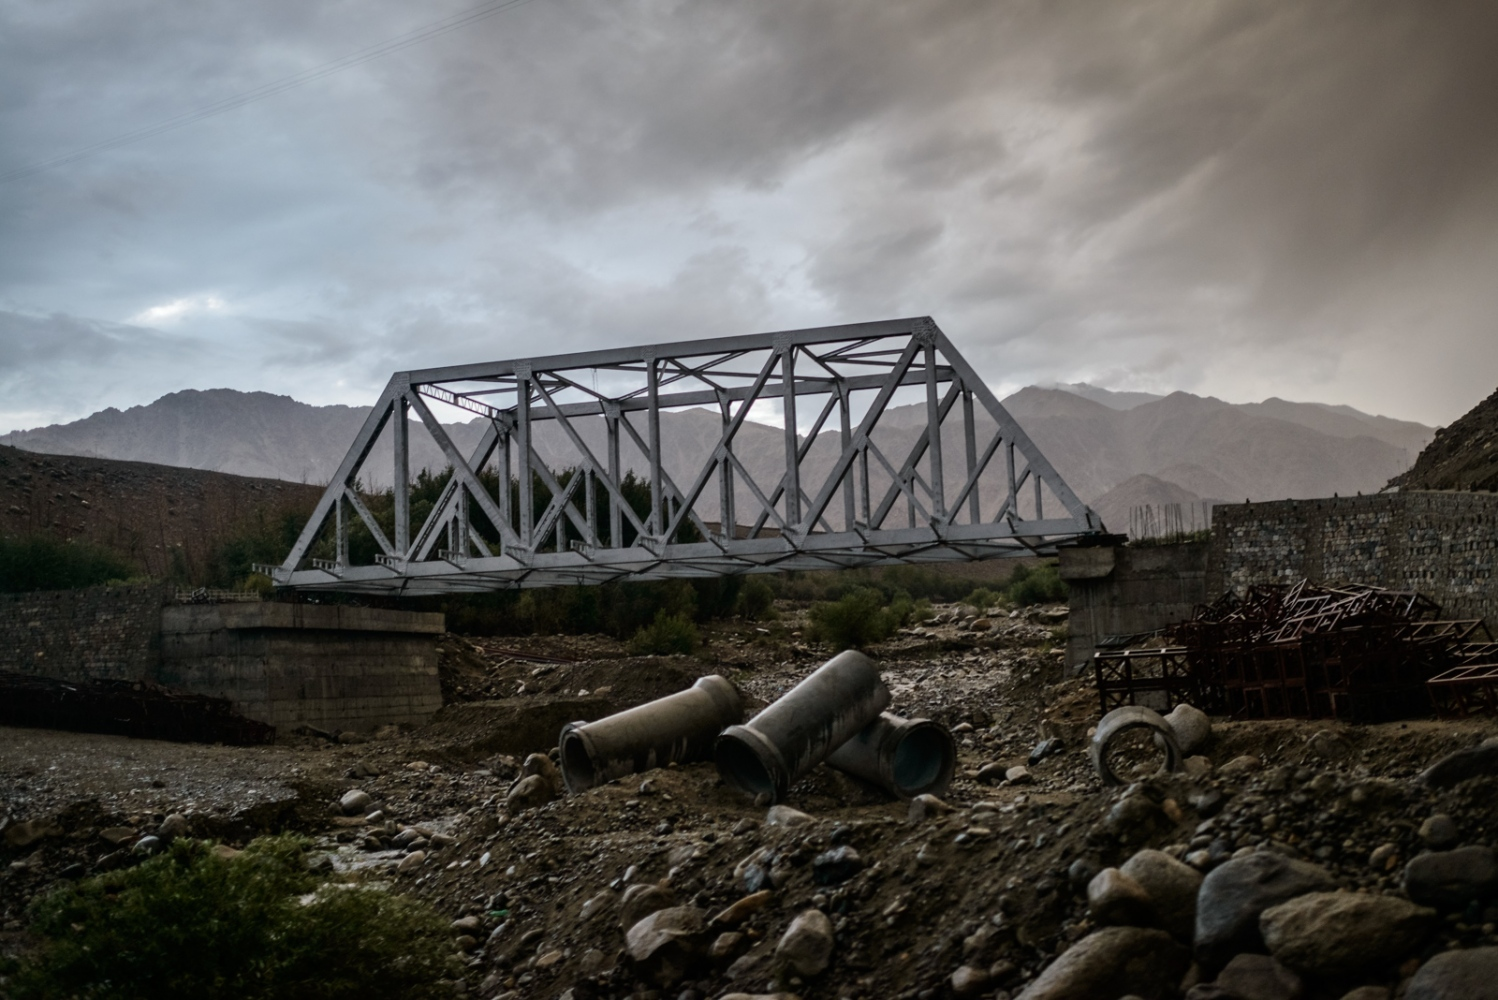 A new bridge being constructed on an frequently transited road near Leh, Ladakh, after the 2010 cloudburst event had destroyed the previous bridge and the adjacent roads.